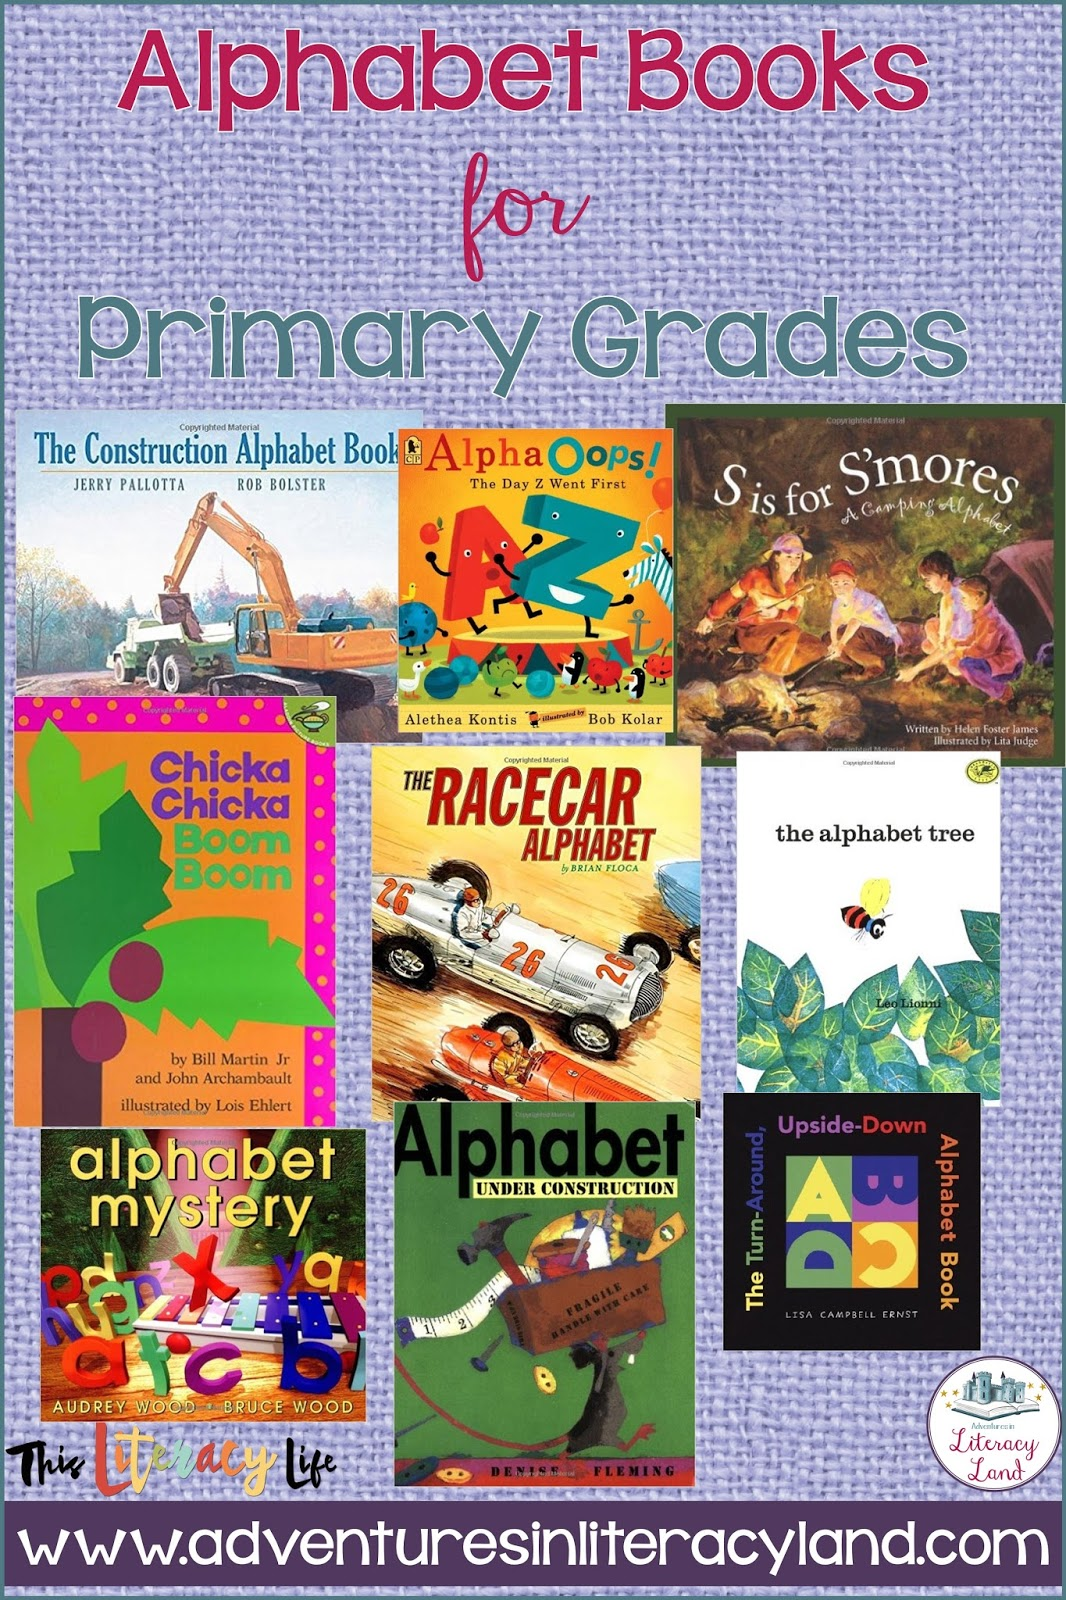 Alphabet Books are for Everyone! | Adventures in Literacy Land